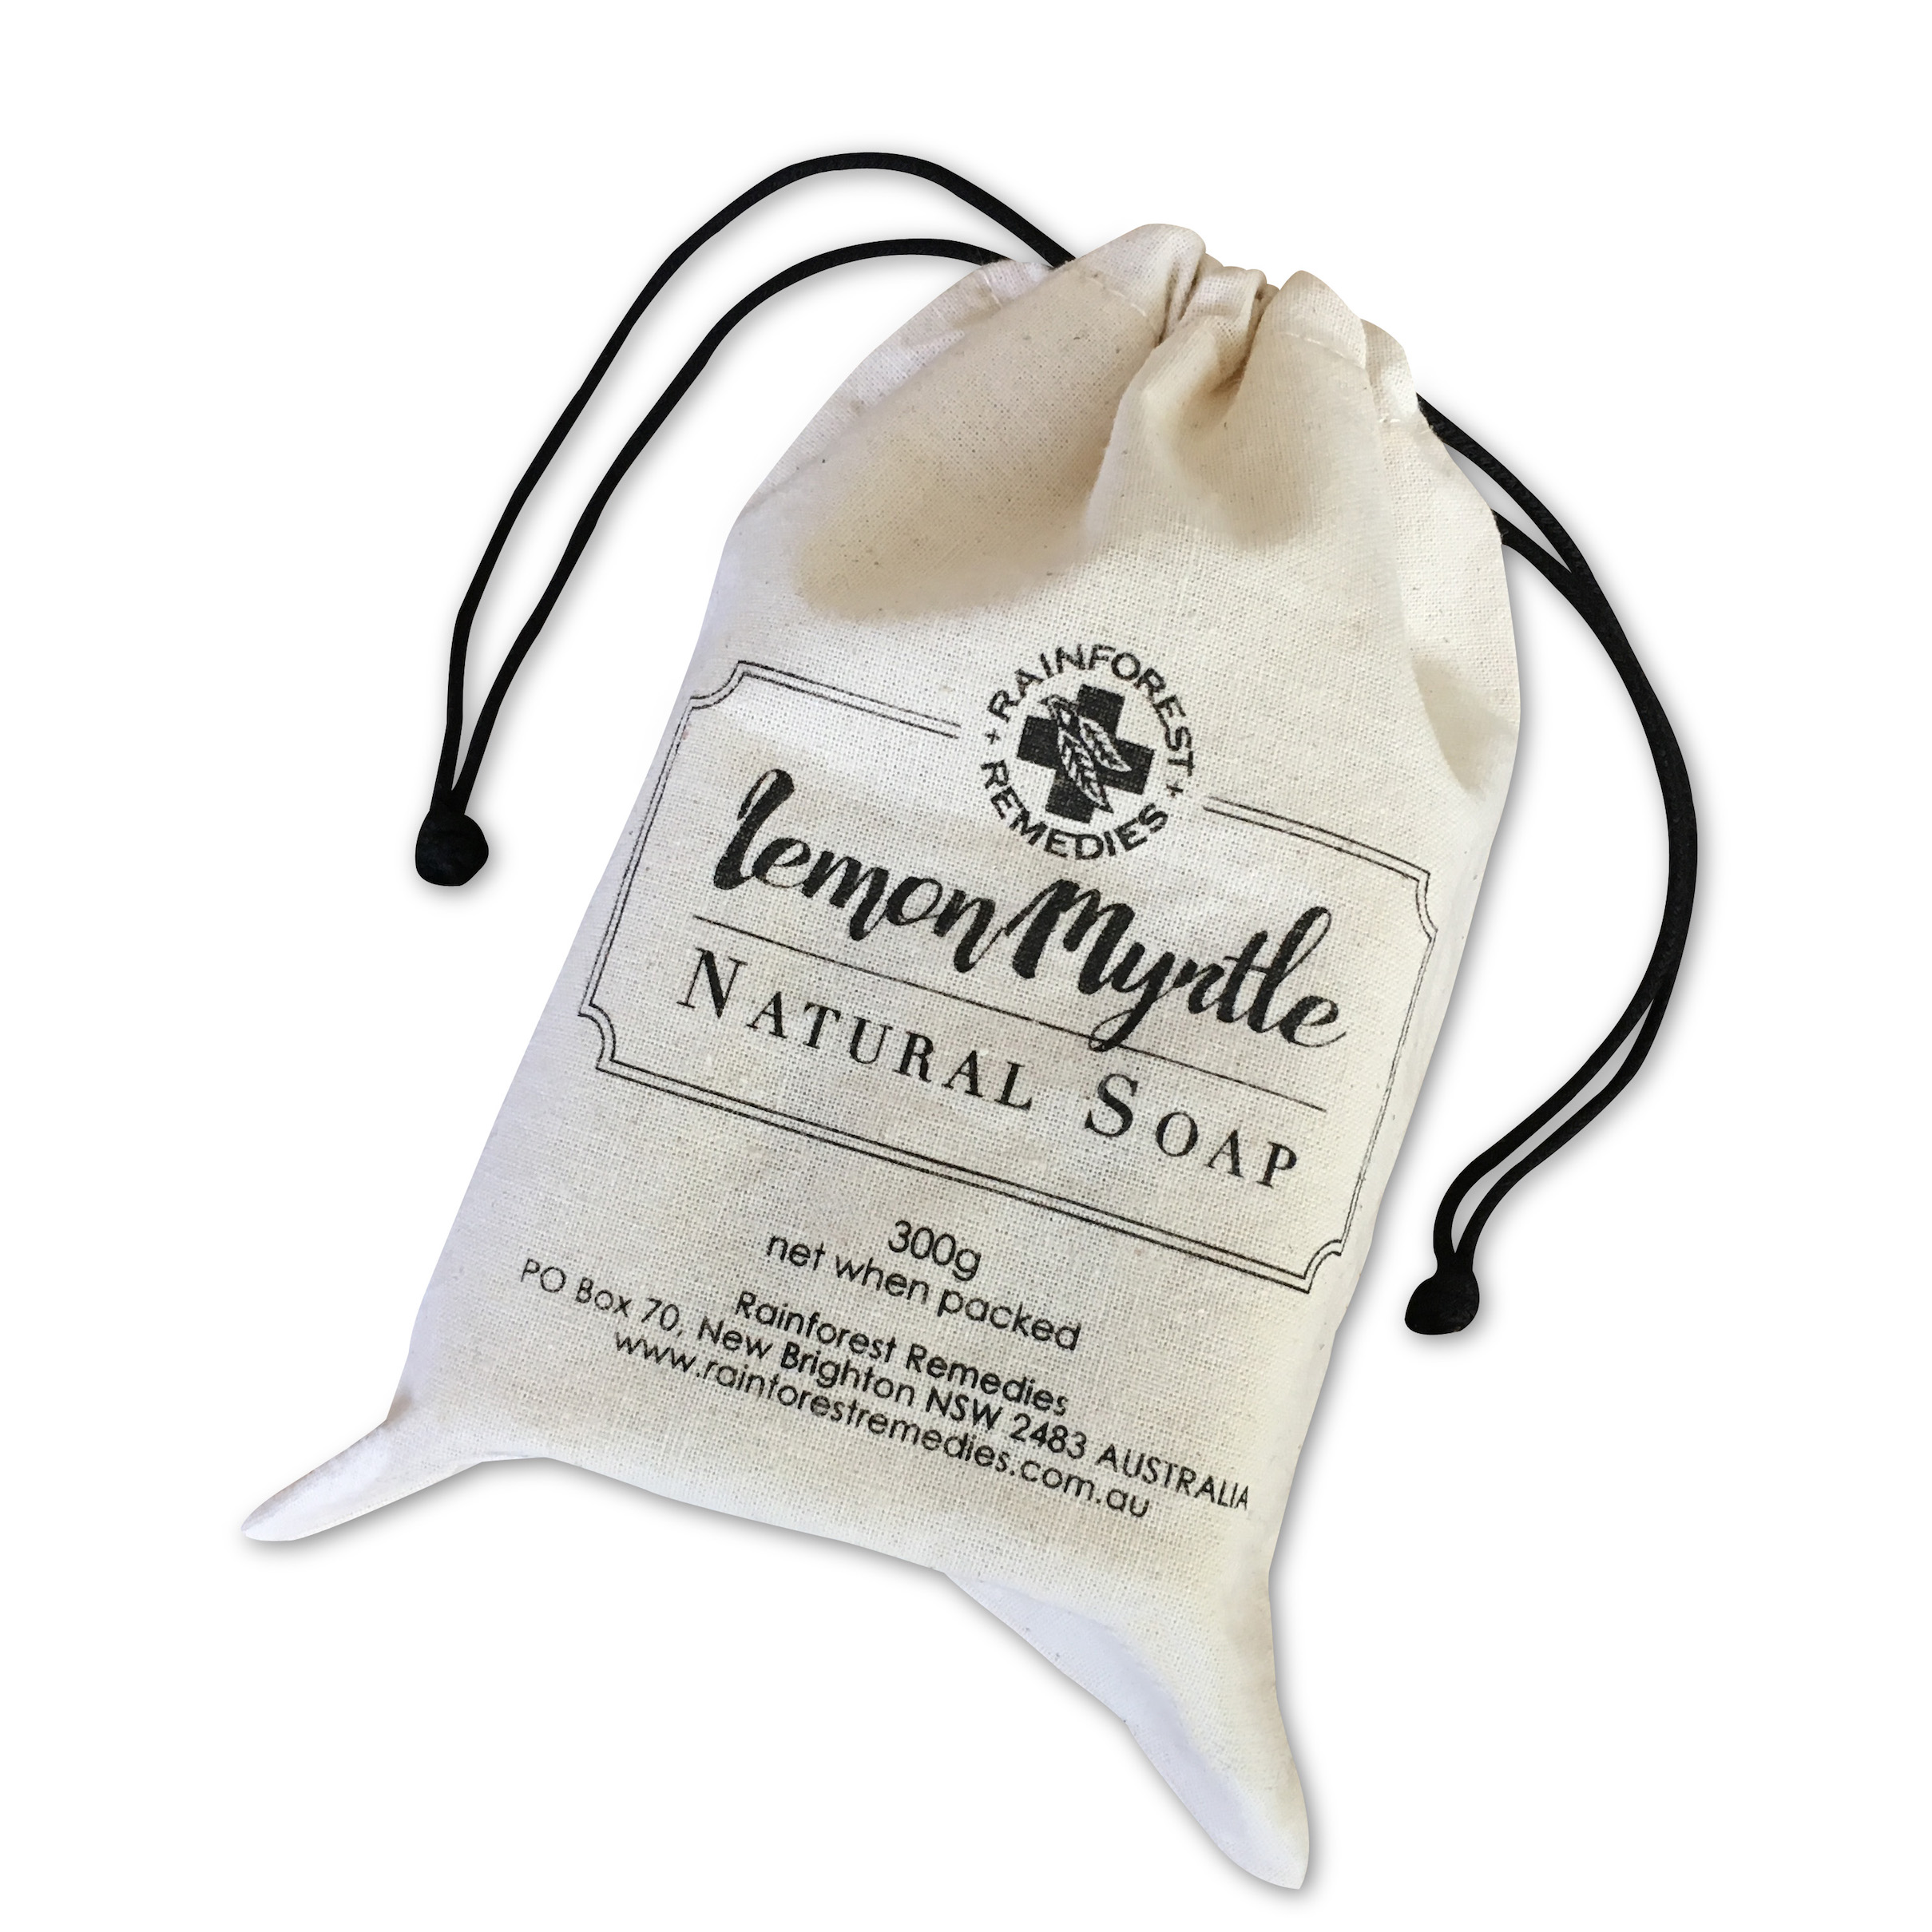 Lemon Myrtle soap bag